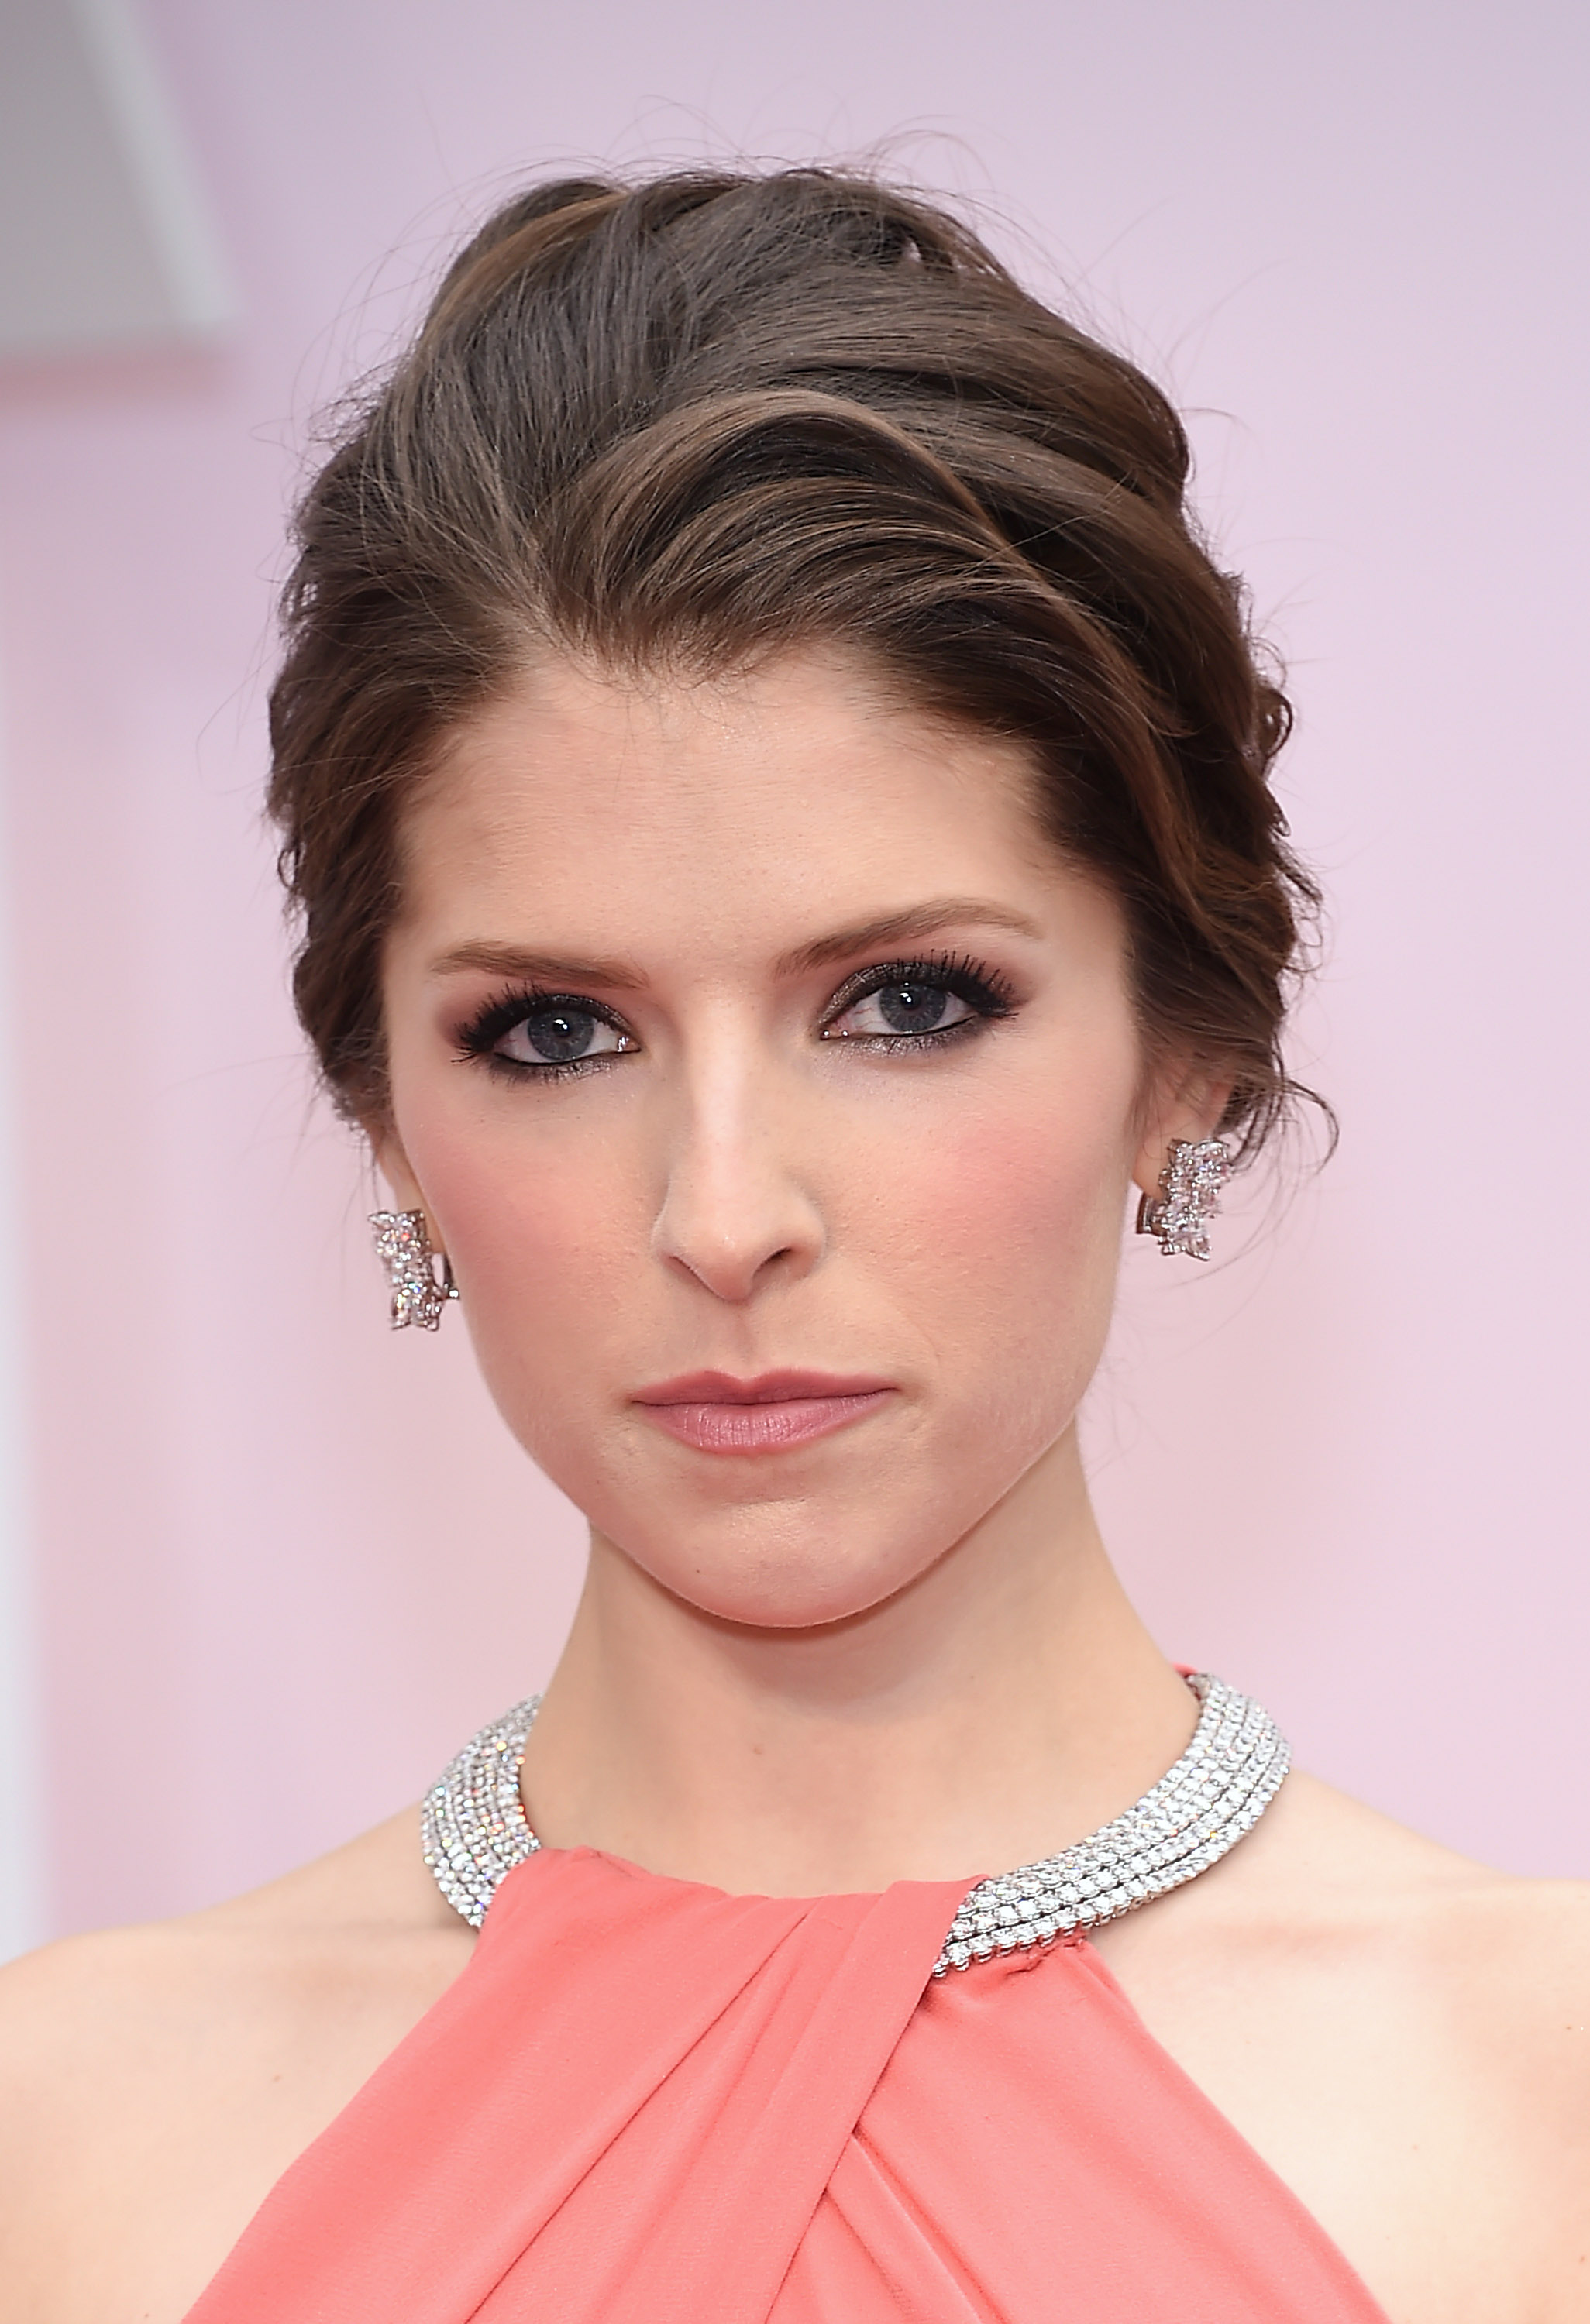 Anna Kendrick nudes (23 fotos), pics Boobs, YouTube, lingerie 2015